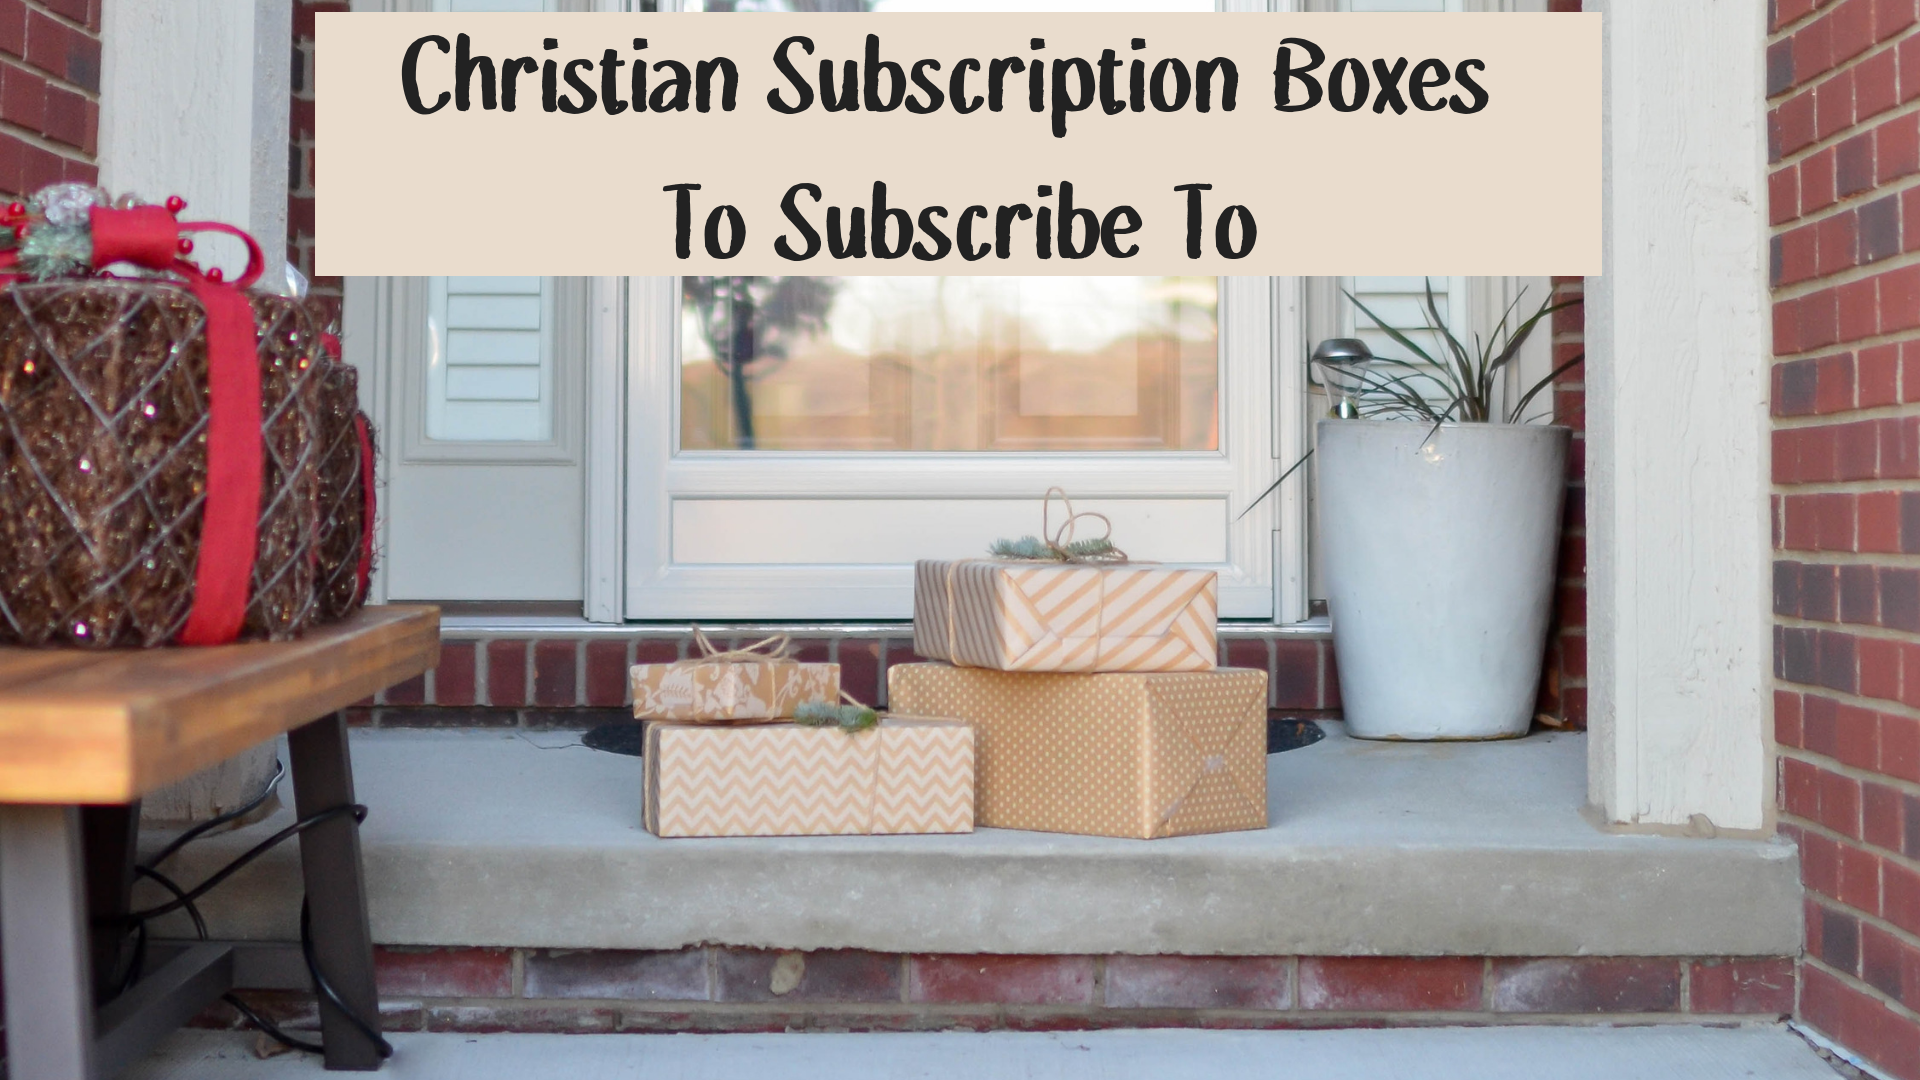 Christian subscription boxes to subscribe to